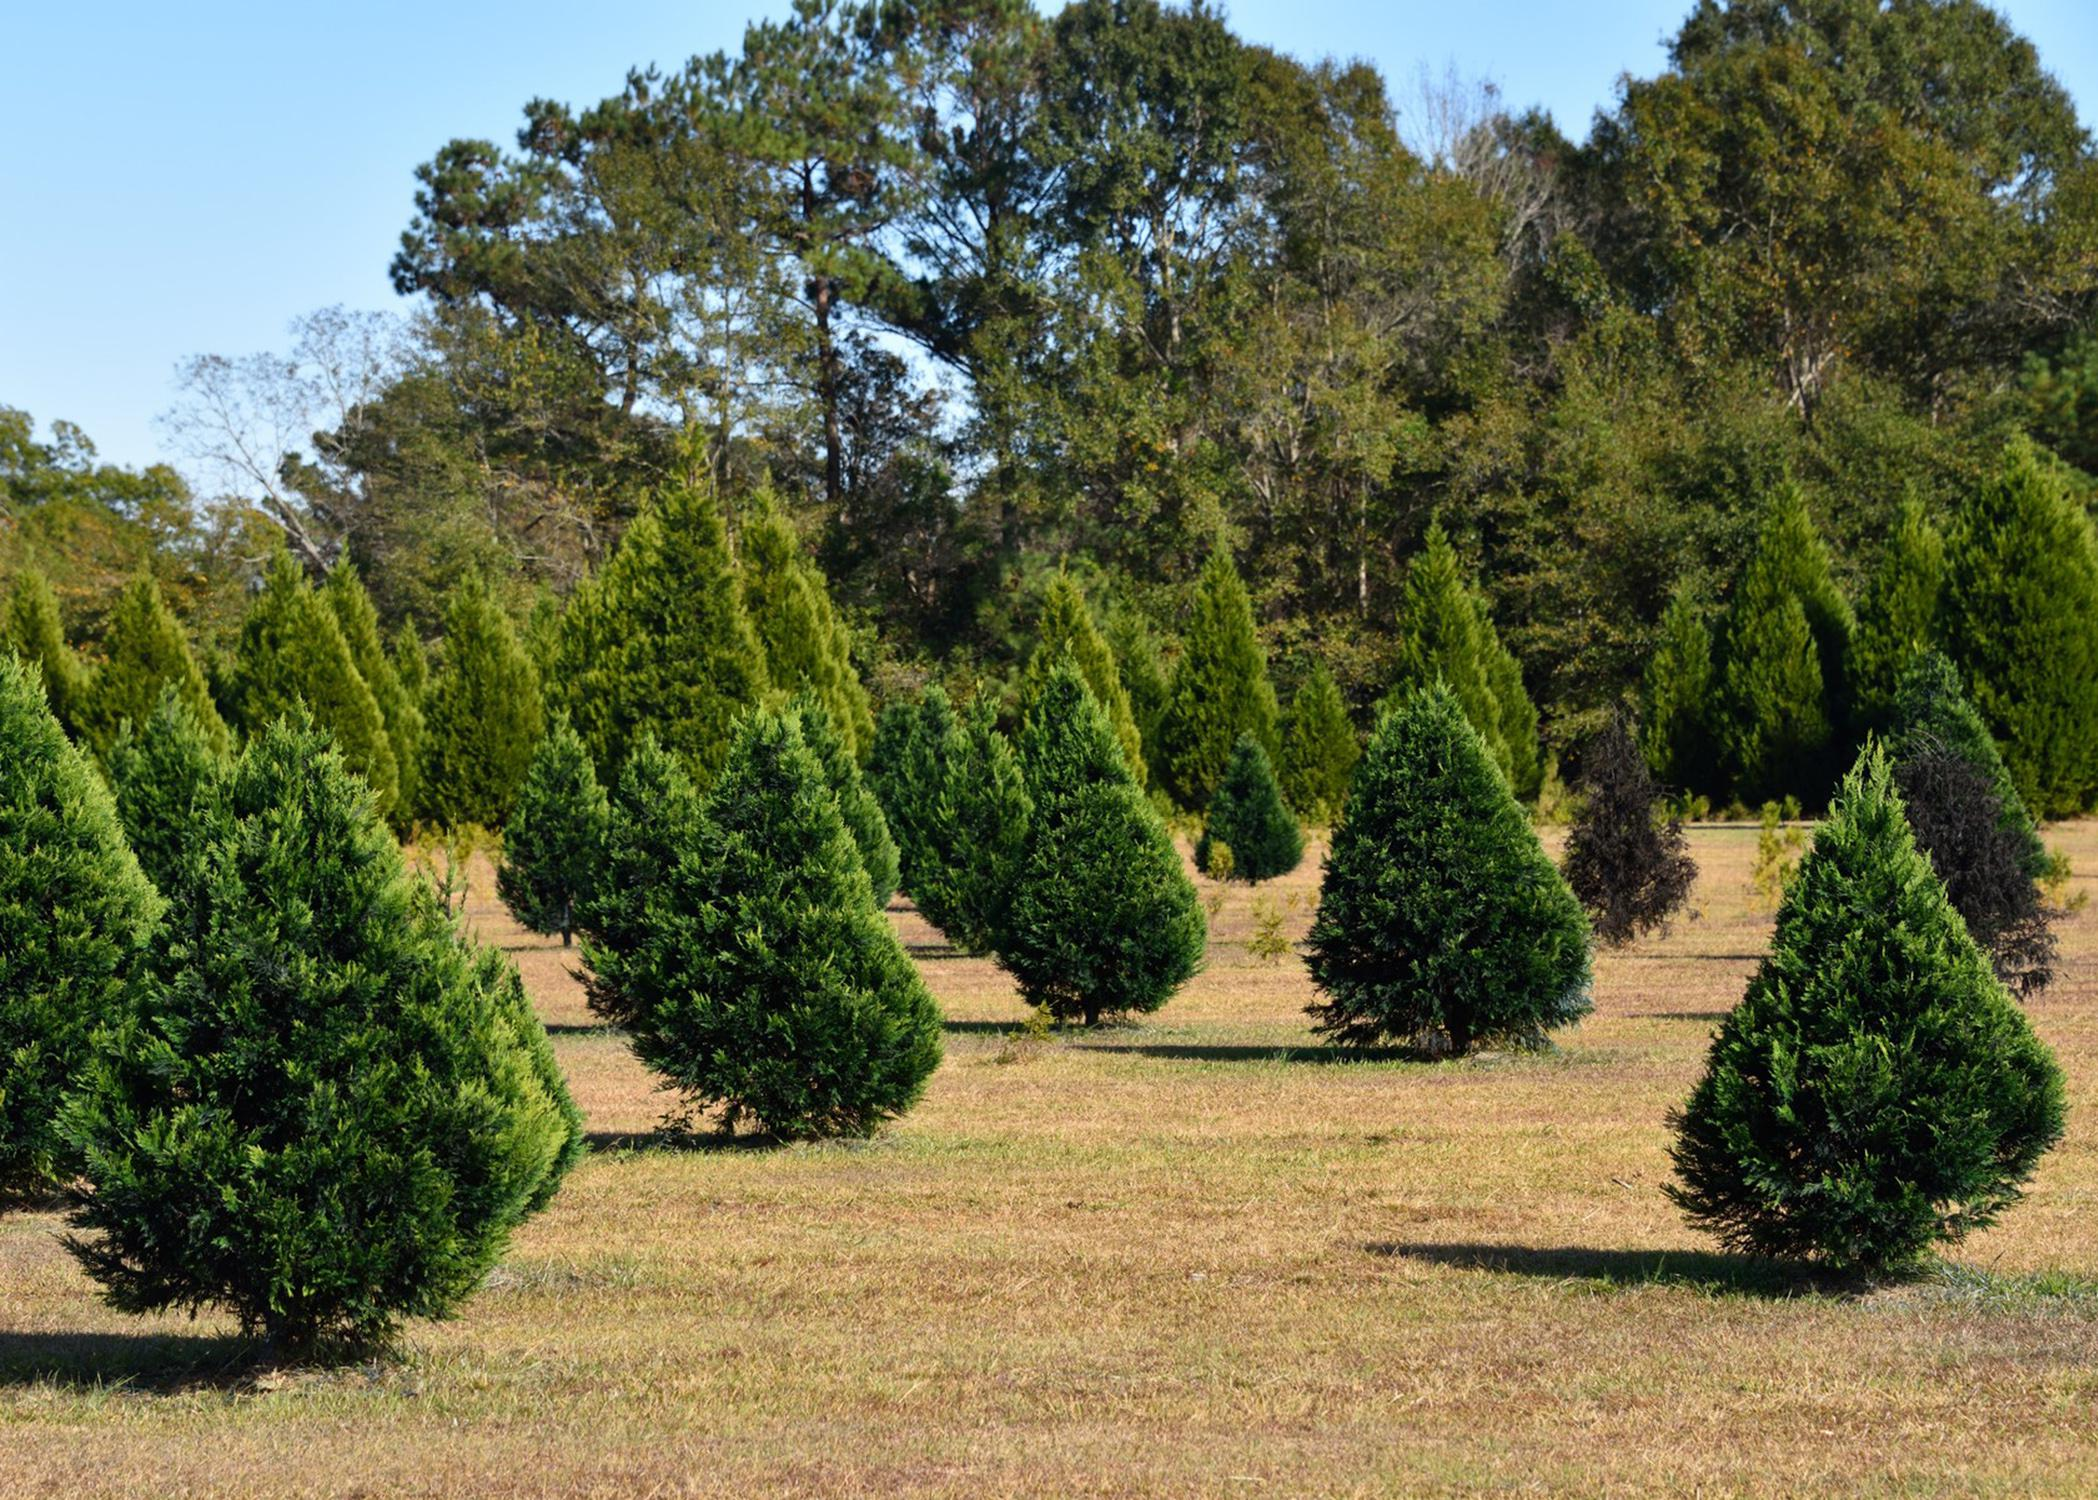 Green cypress tree rows in a field.